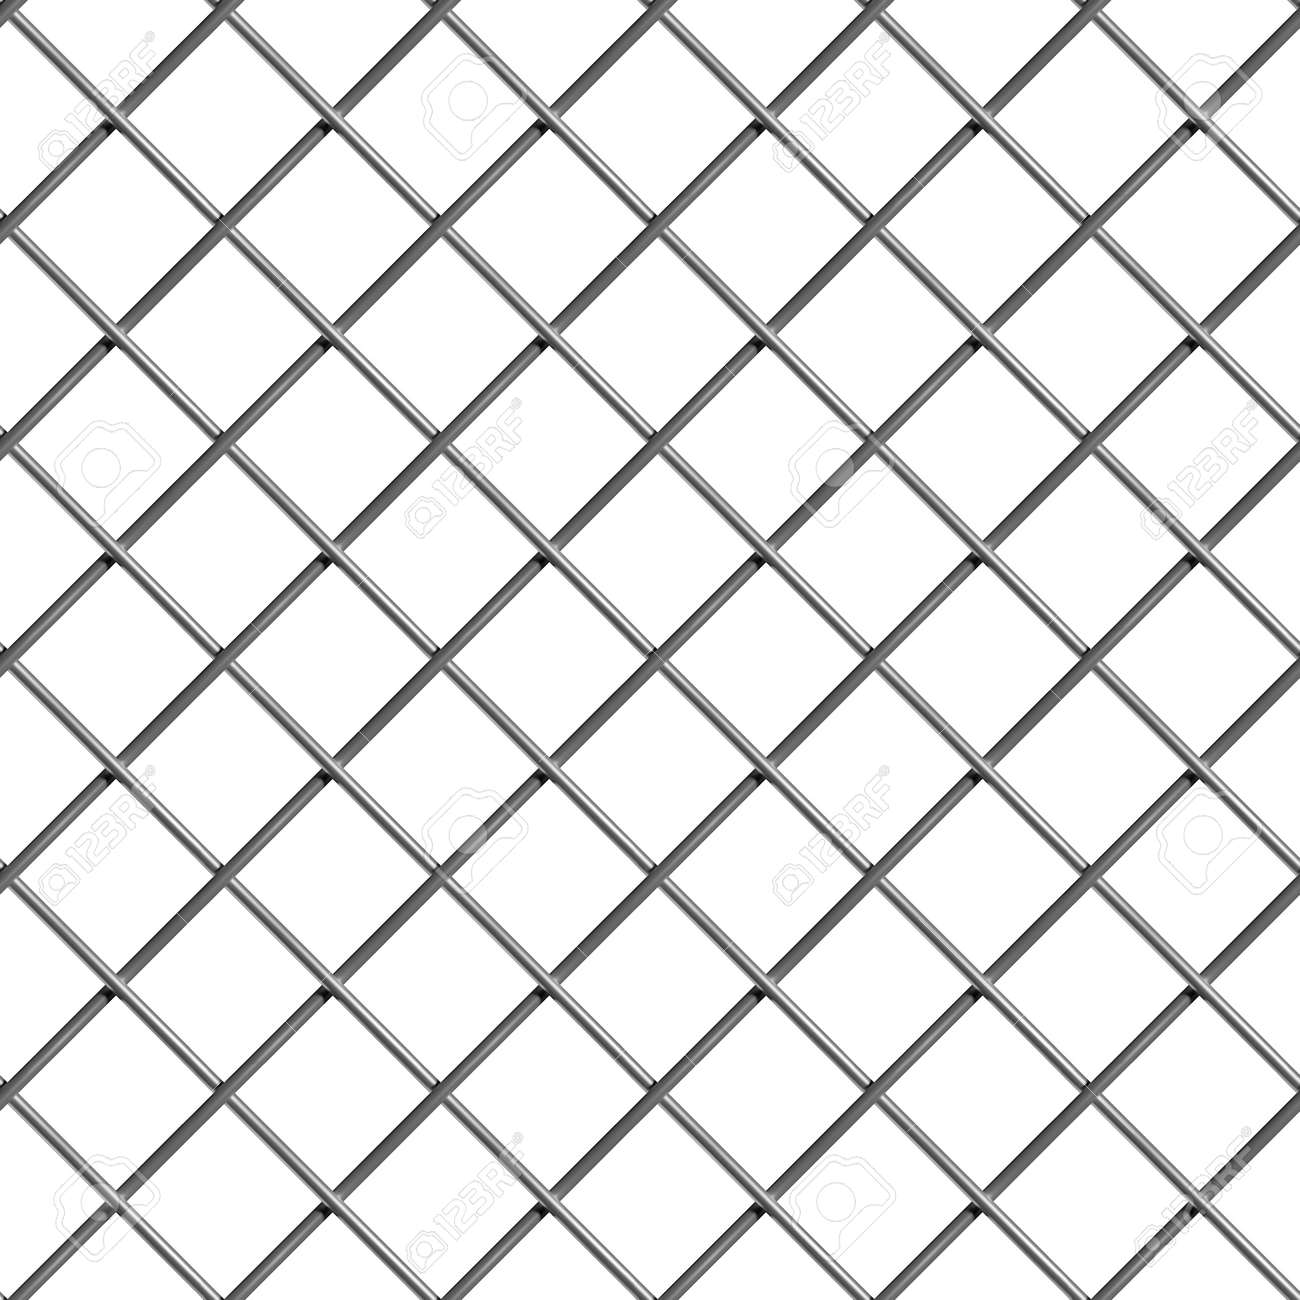 hight resolution of braided wire steel net on white industrial abstract textured seamless background front view stock photo